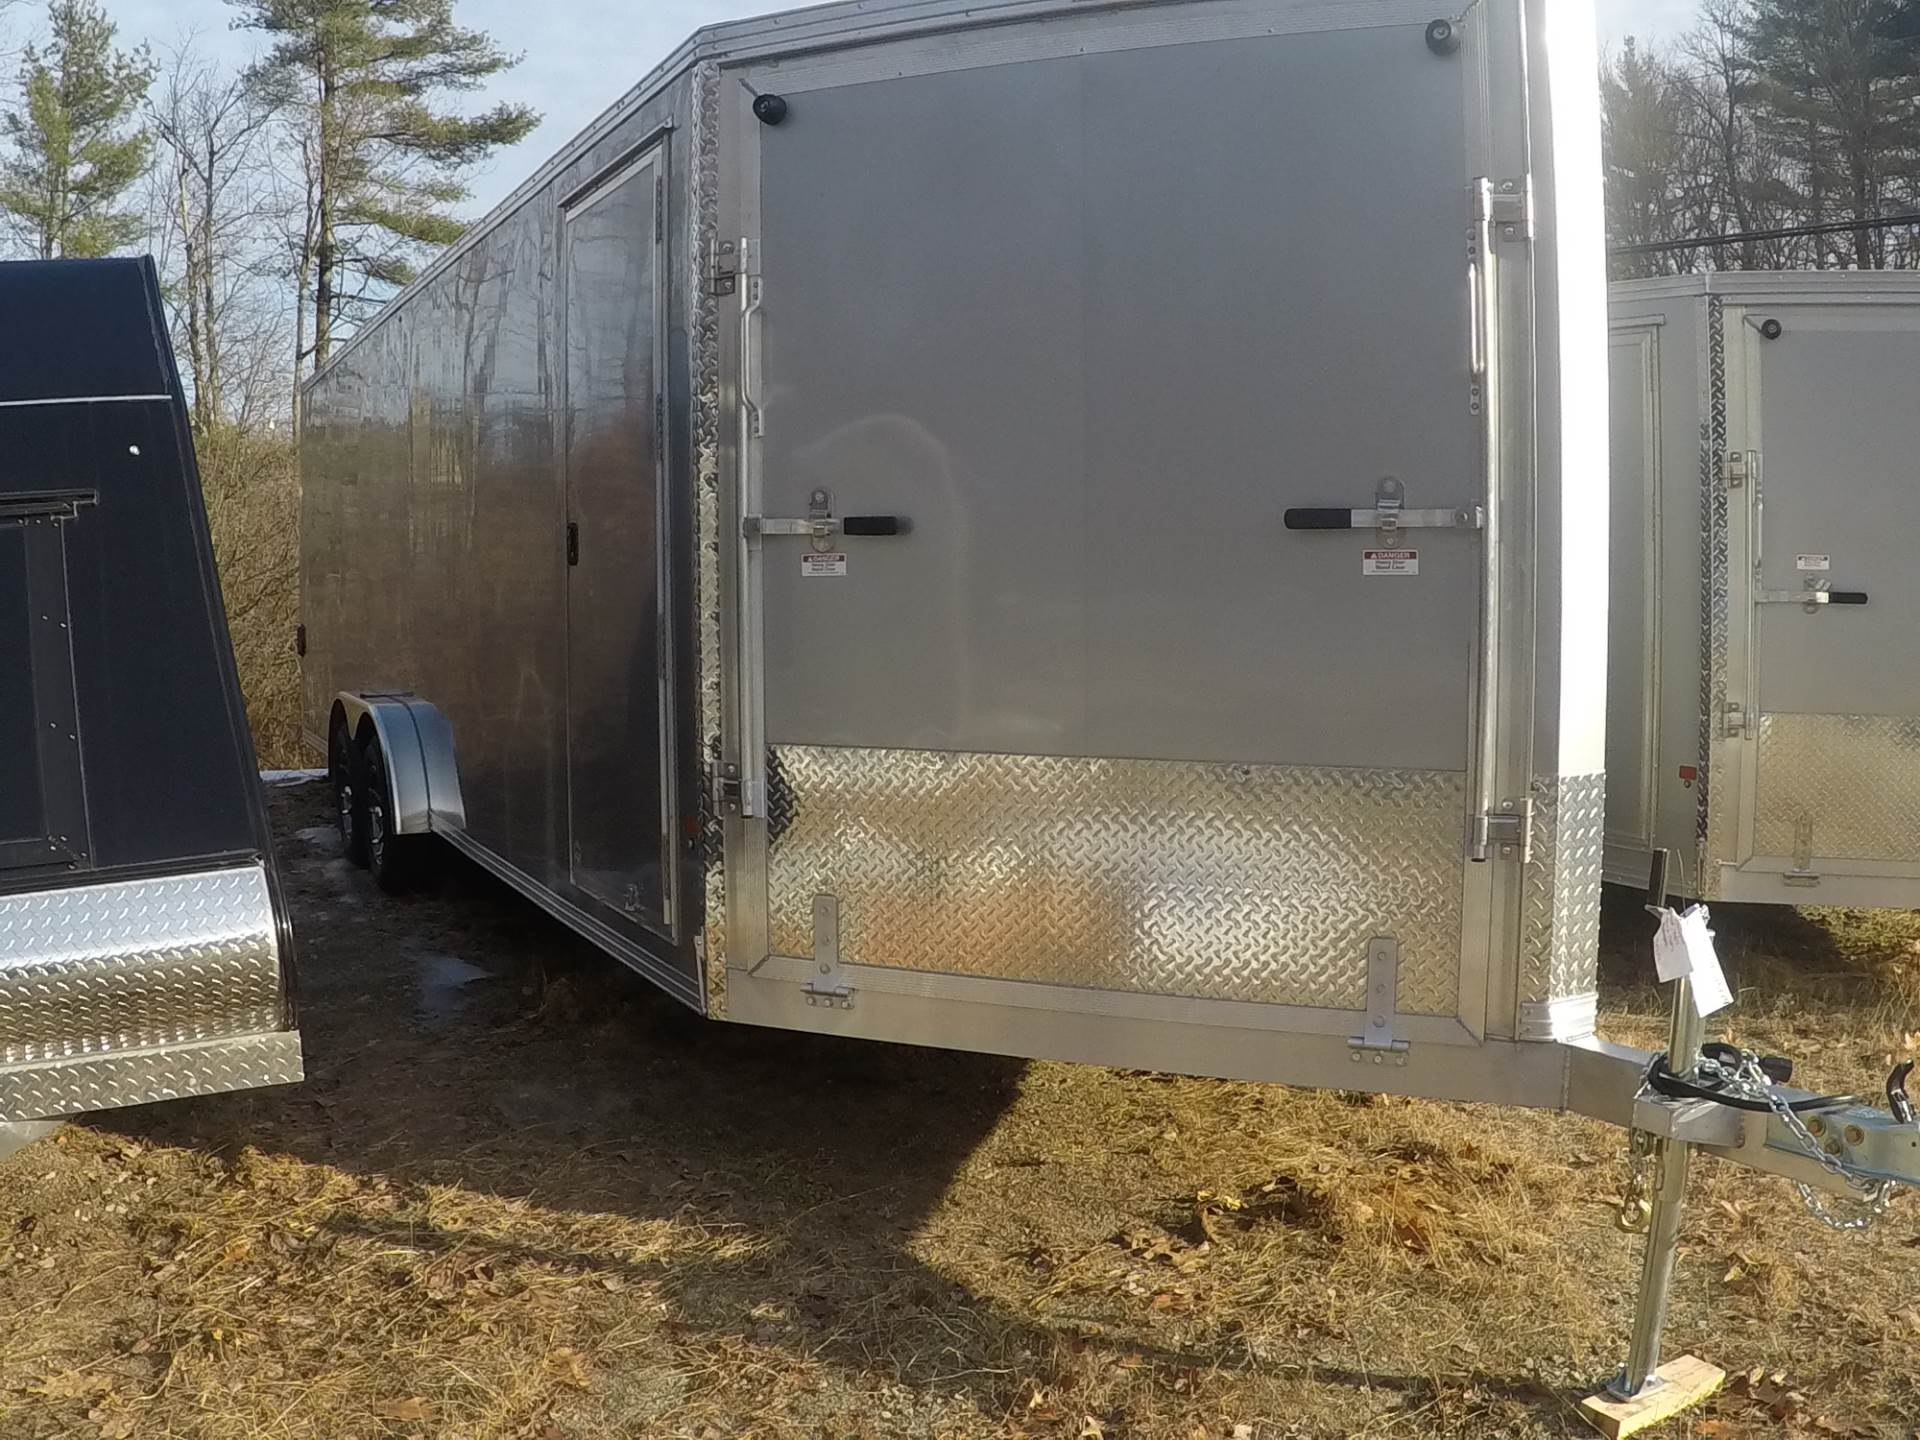 2019 Alcom Trailer EZES 7.5X24 in Hillsborough, New Hampshire